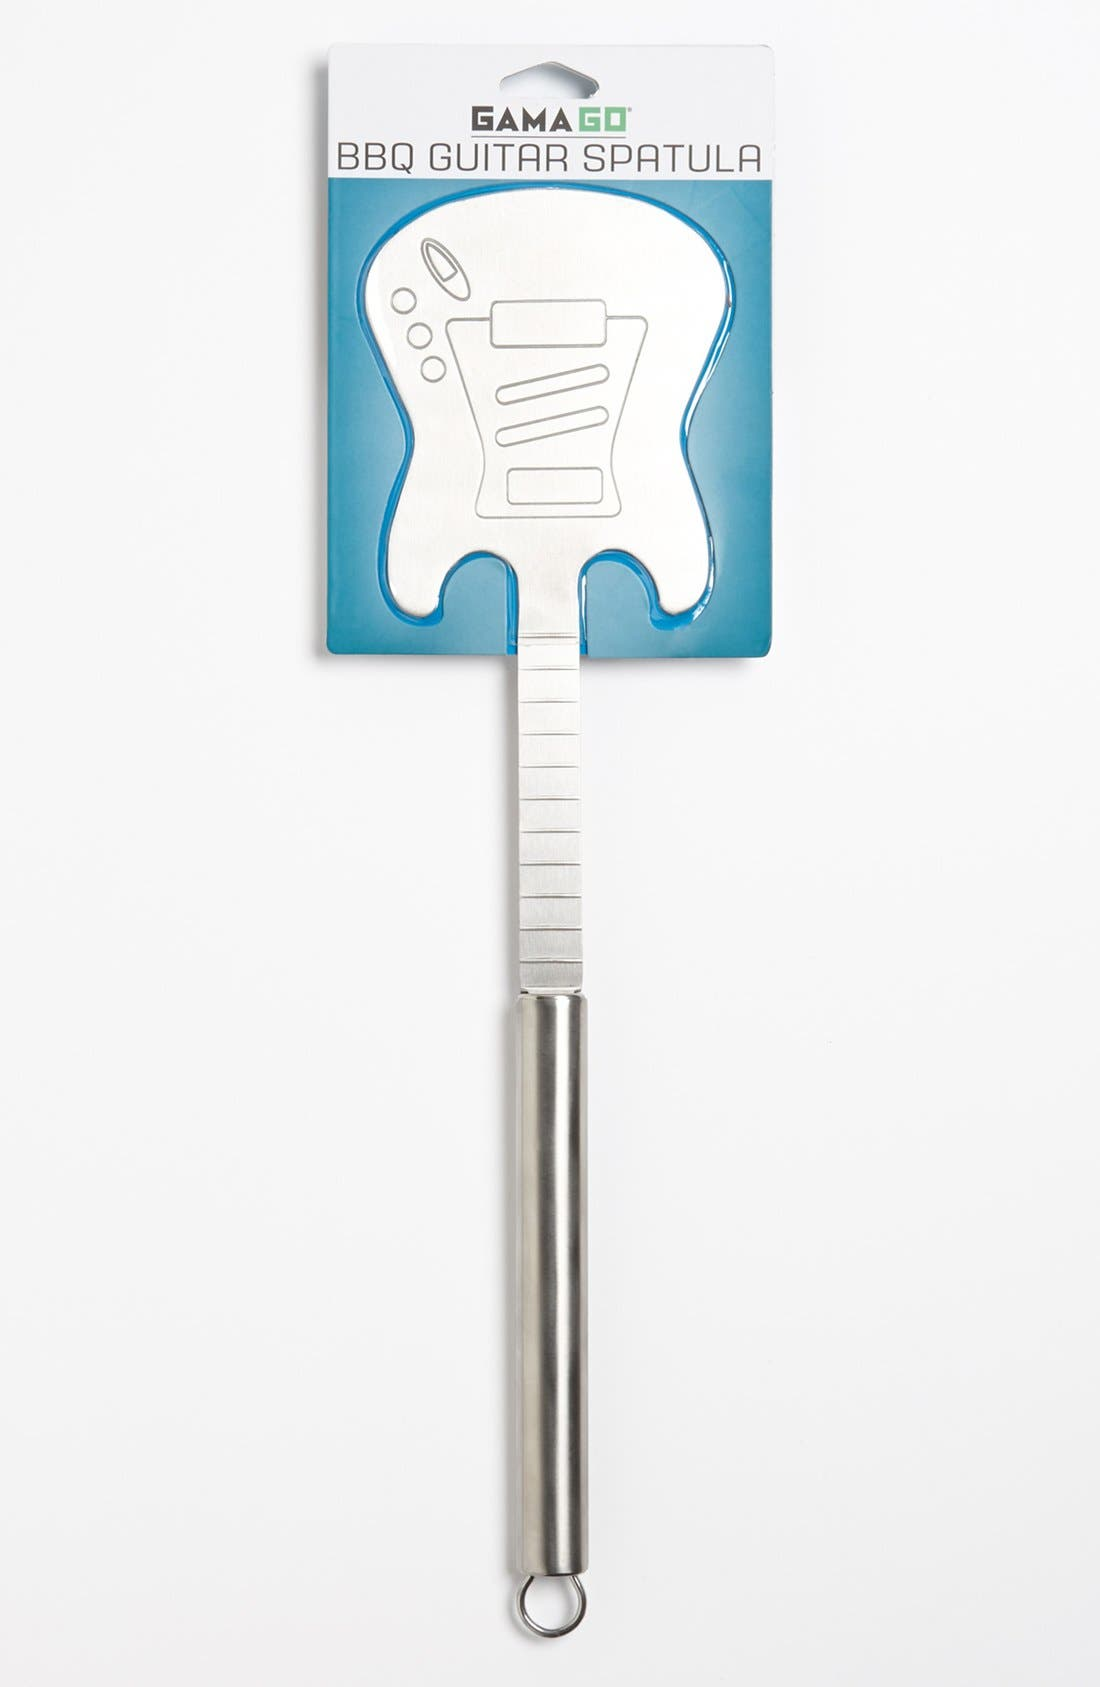 Alternate Image 1 Selected - GAMAGO 'Guitar' Stainless Steel BBQ Spatula